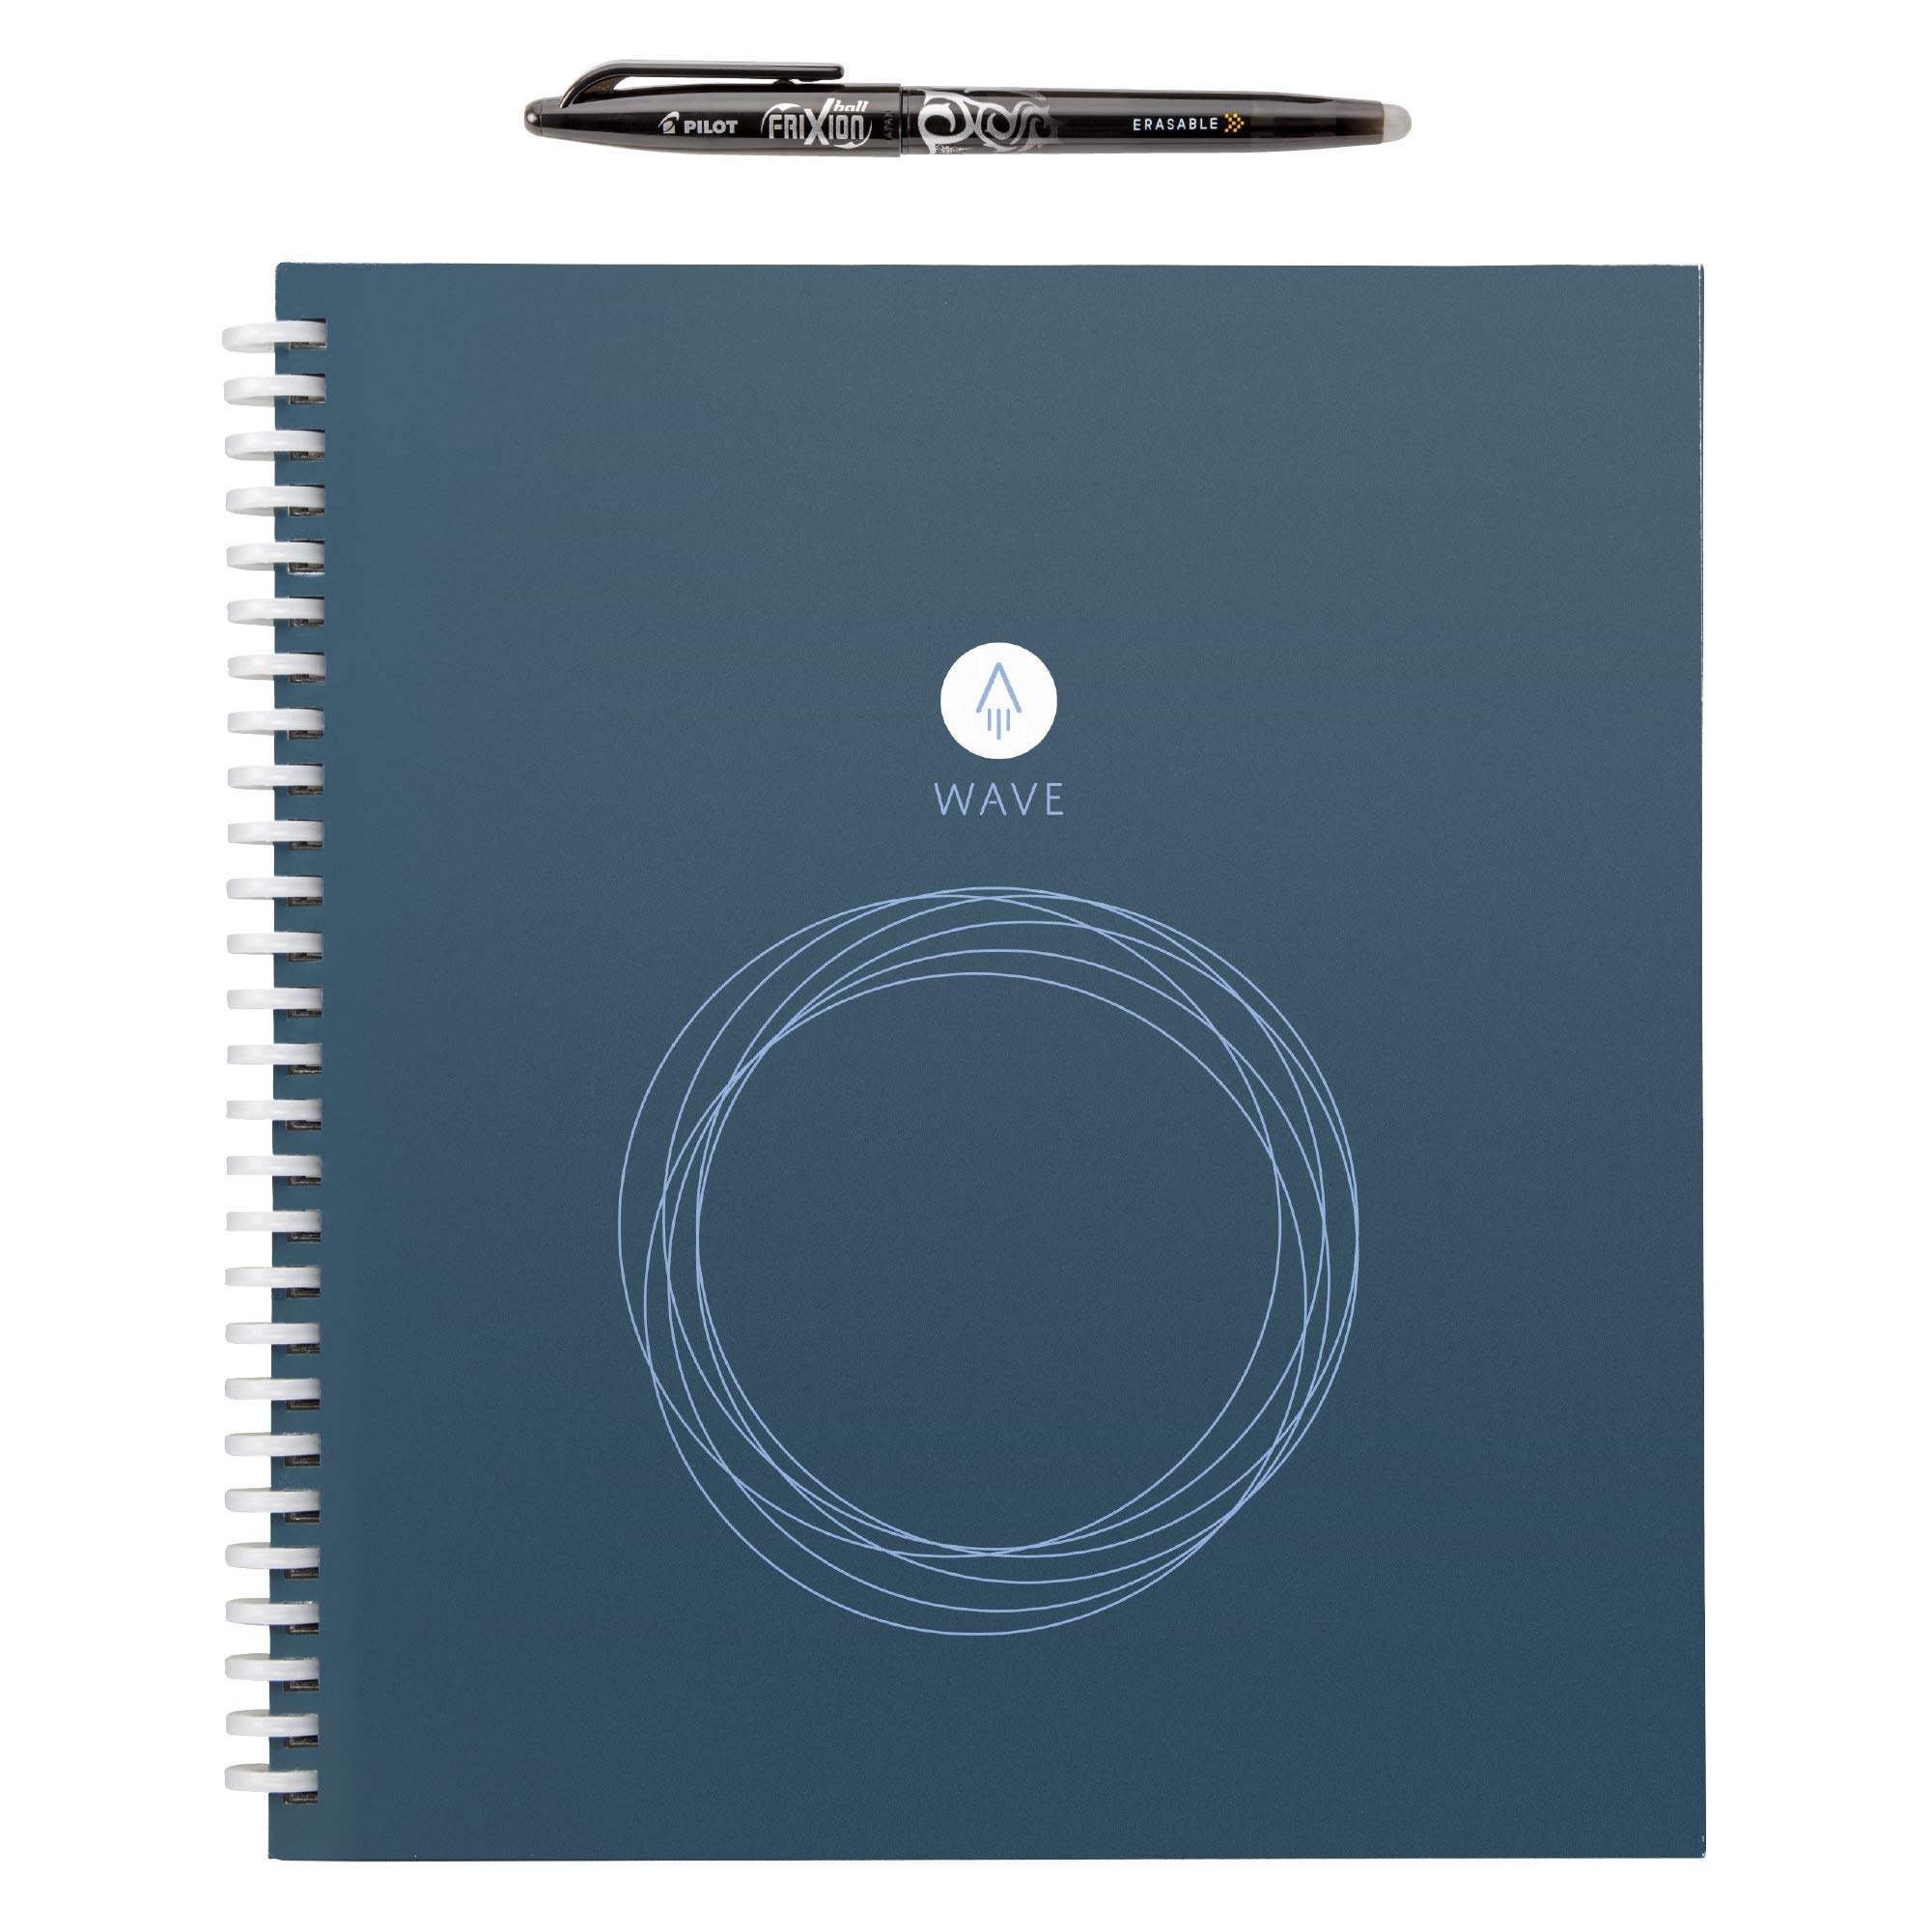 Rocketbook Wave Smart Notebook - Dotted Grid Eco-Friendly Notebook with 1 Pilot Frixion Pen Included - Standard Size (8.5'' x 9.5'') by Rocketbook